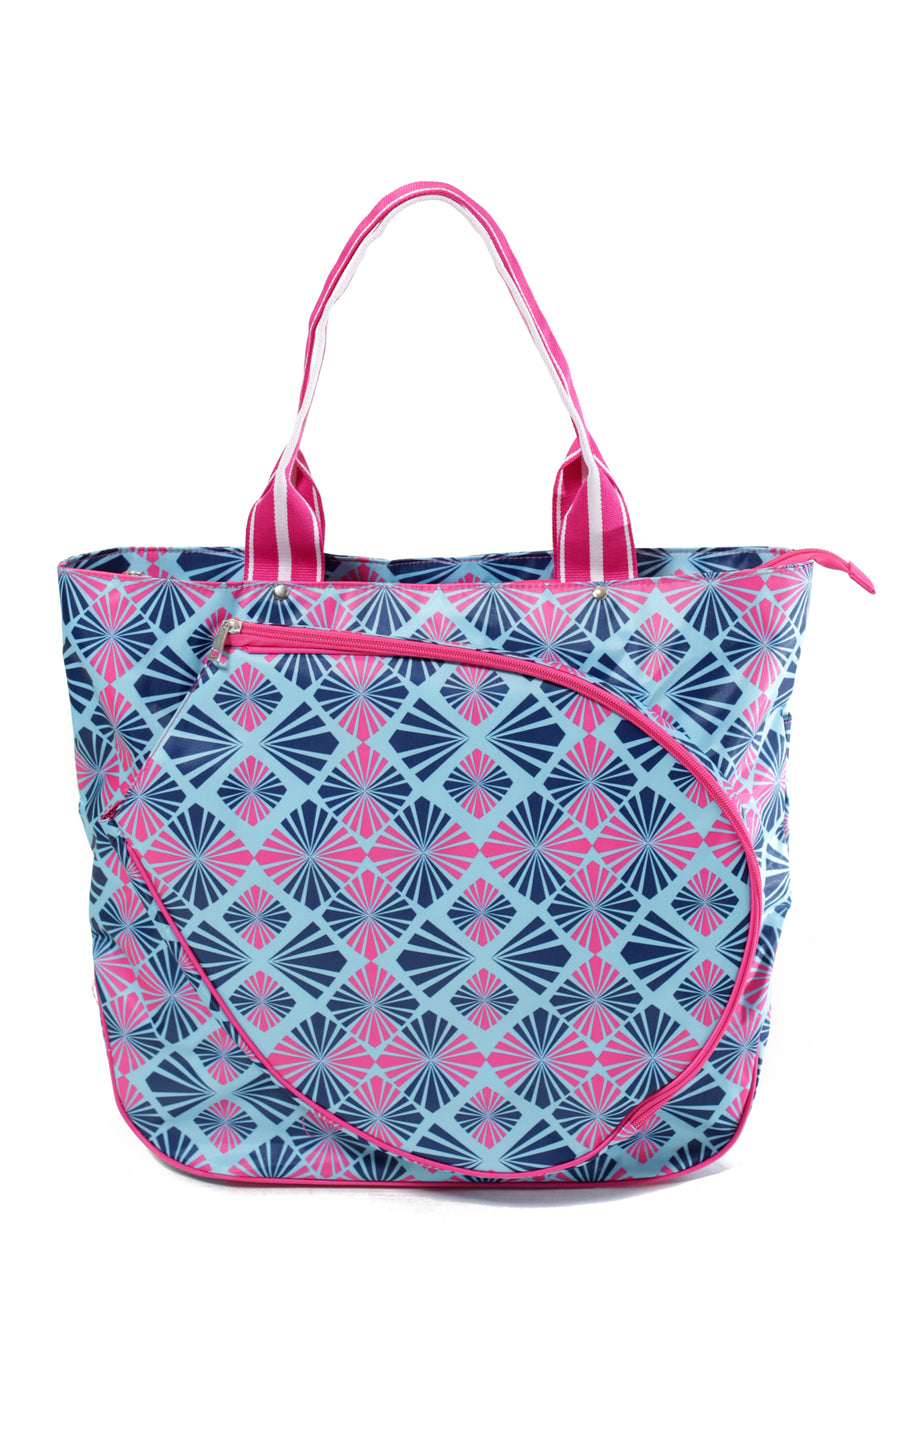 Summer Rays Tennis Tote - FINAL SALE